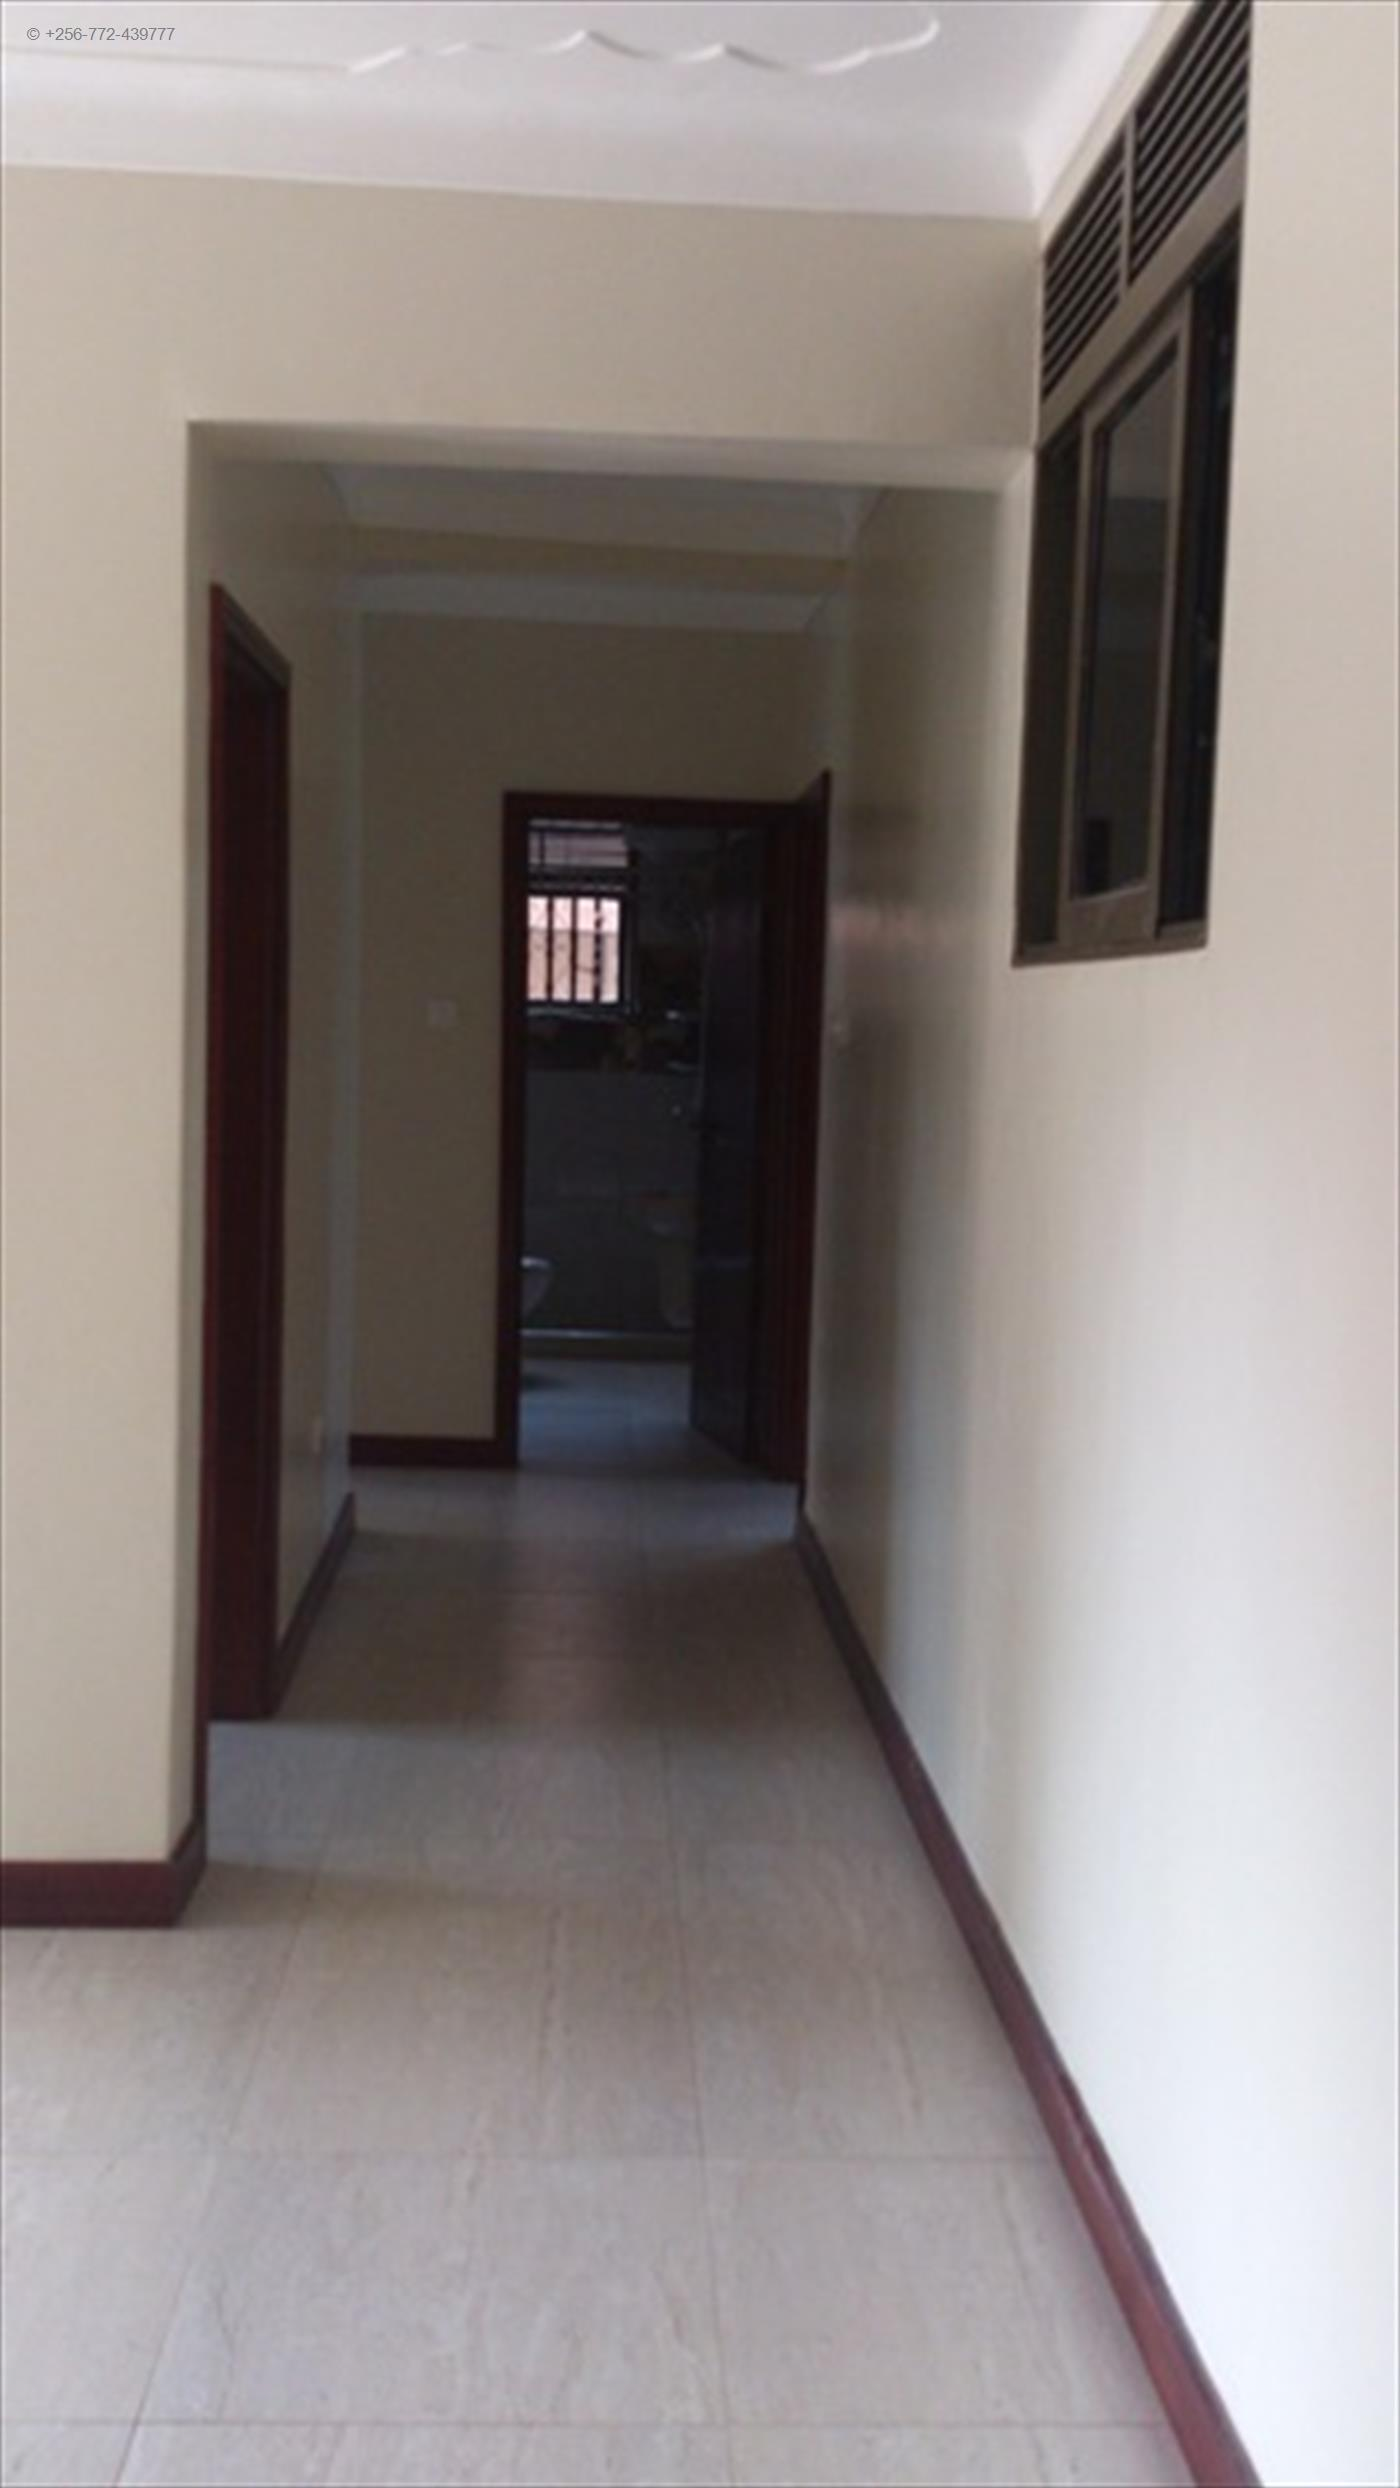 Apartment for rent in Nsambya Kampala